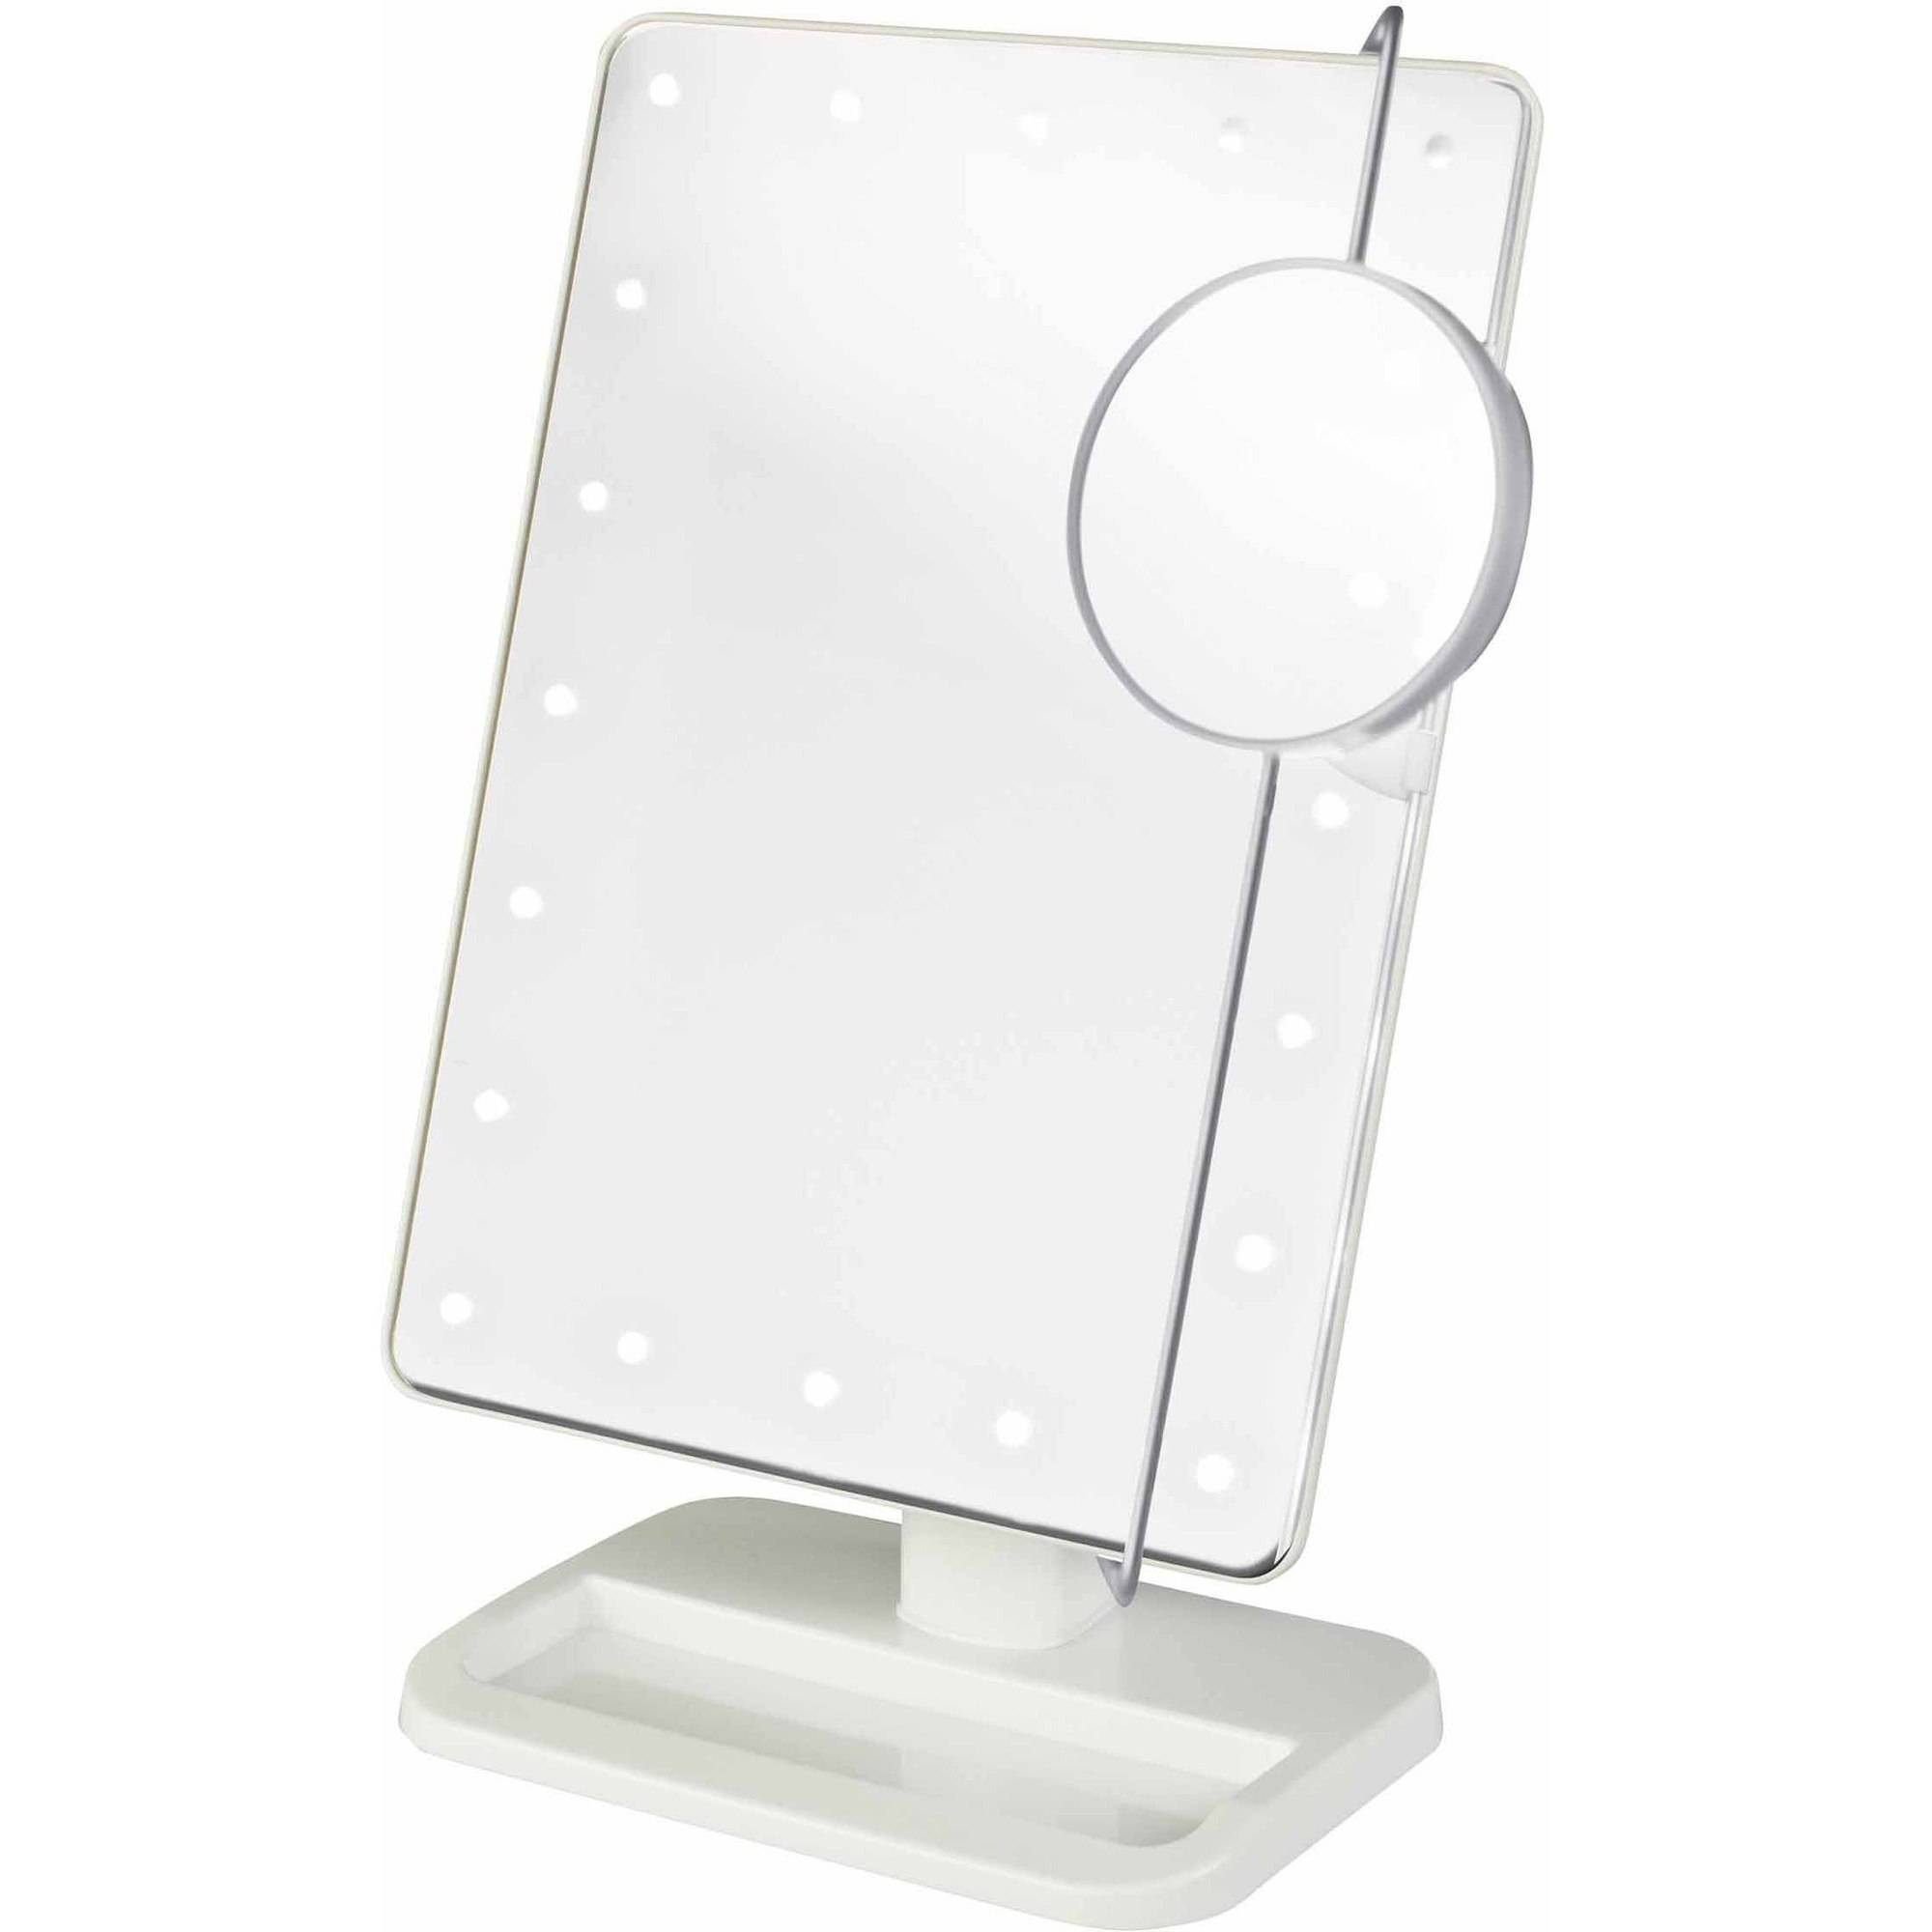 Lighted Makeup Mirror Reviews | Lighted Makeup Mirror Wall Mounted | Best Lighted Makeup Mirror